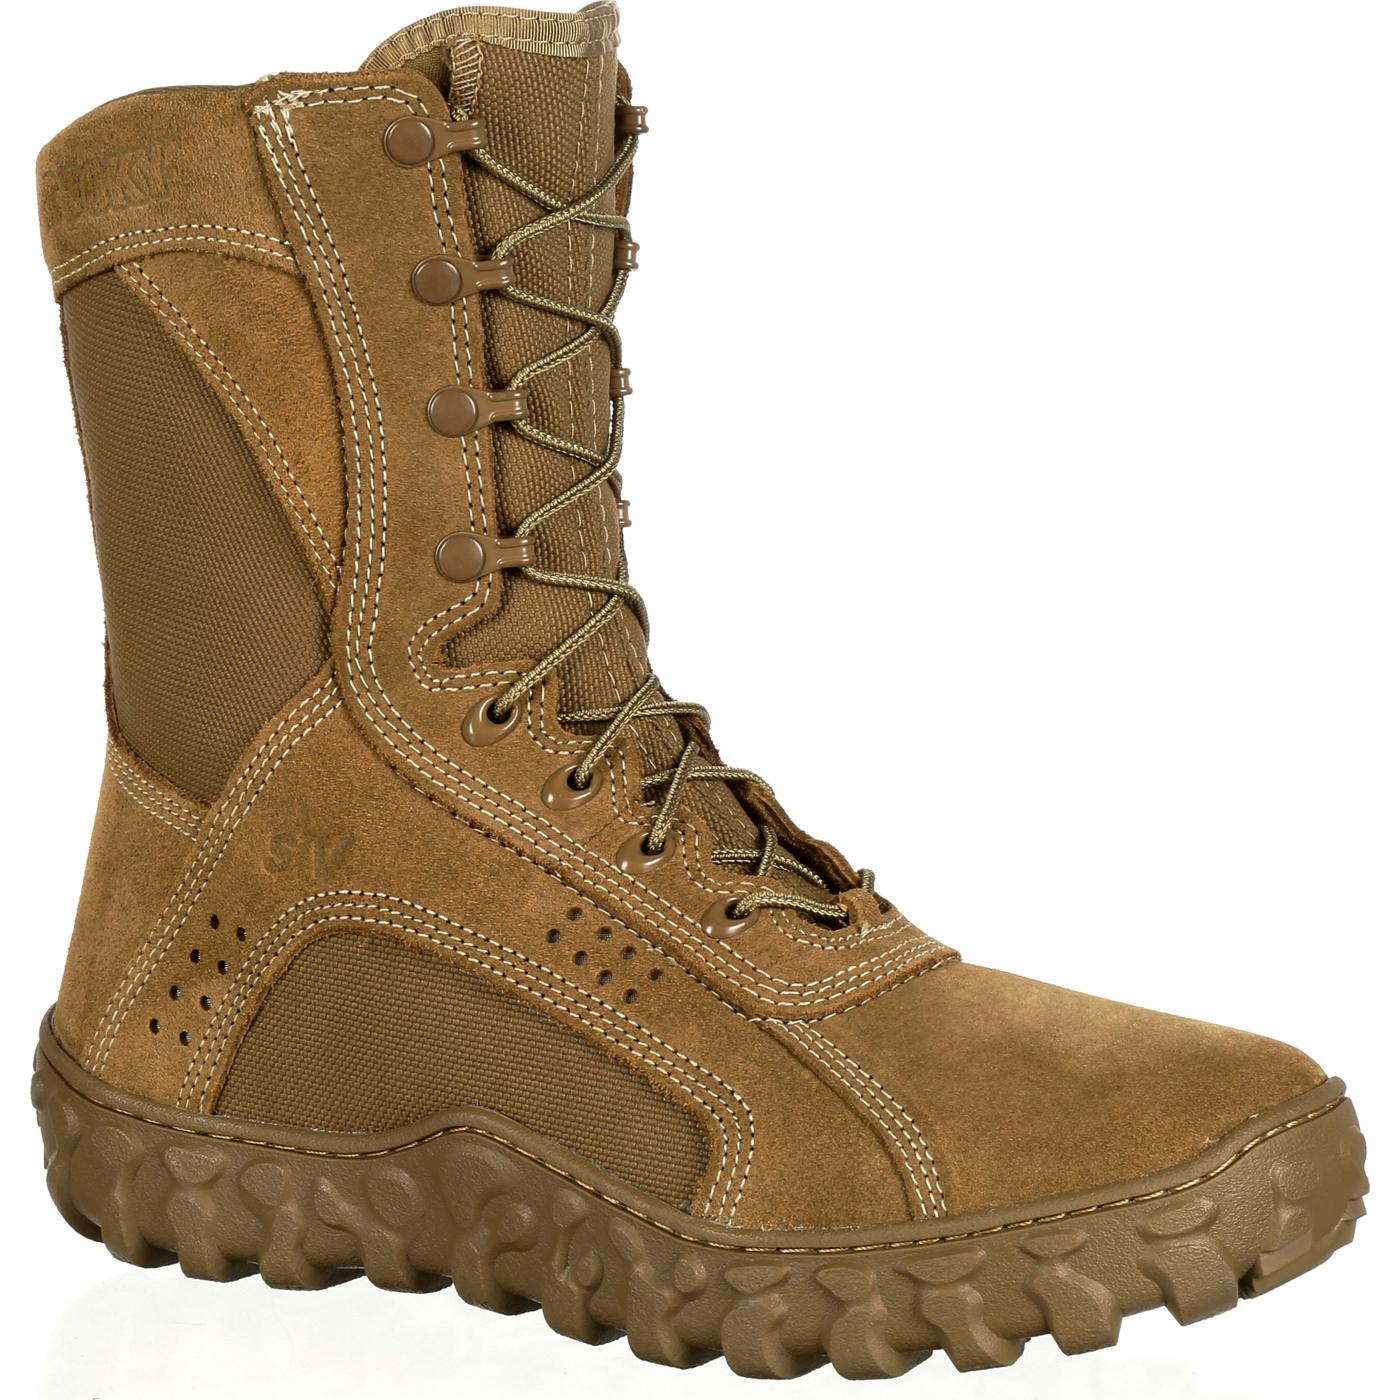 rocky boots rocky s2v tactical military boot, , large rtaiiud